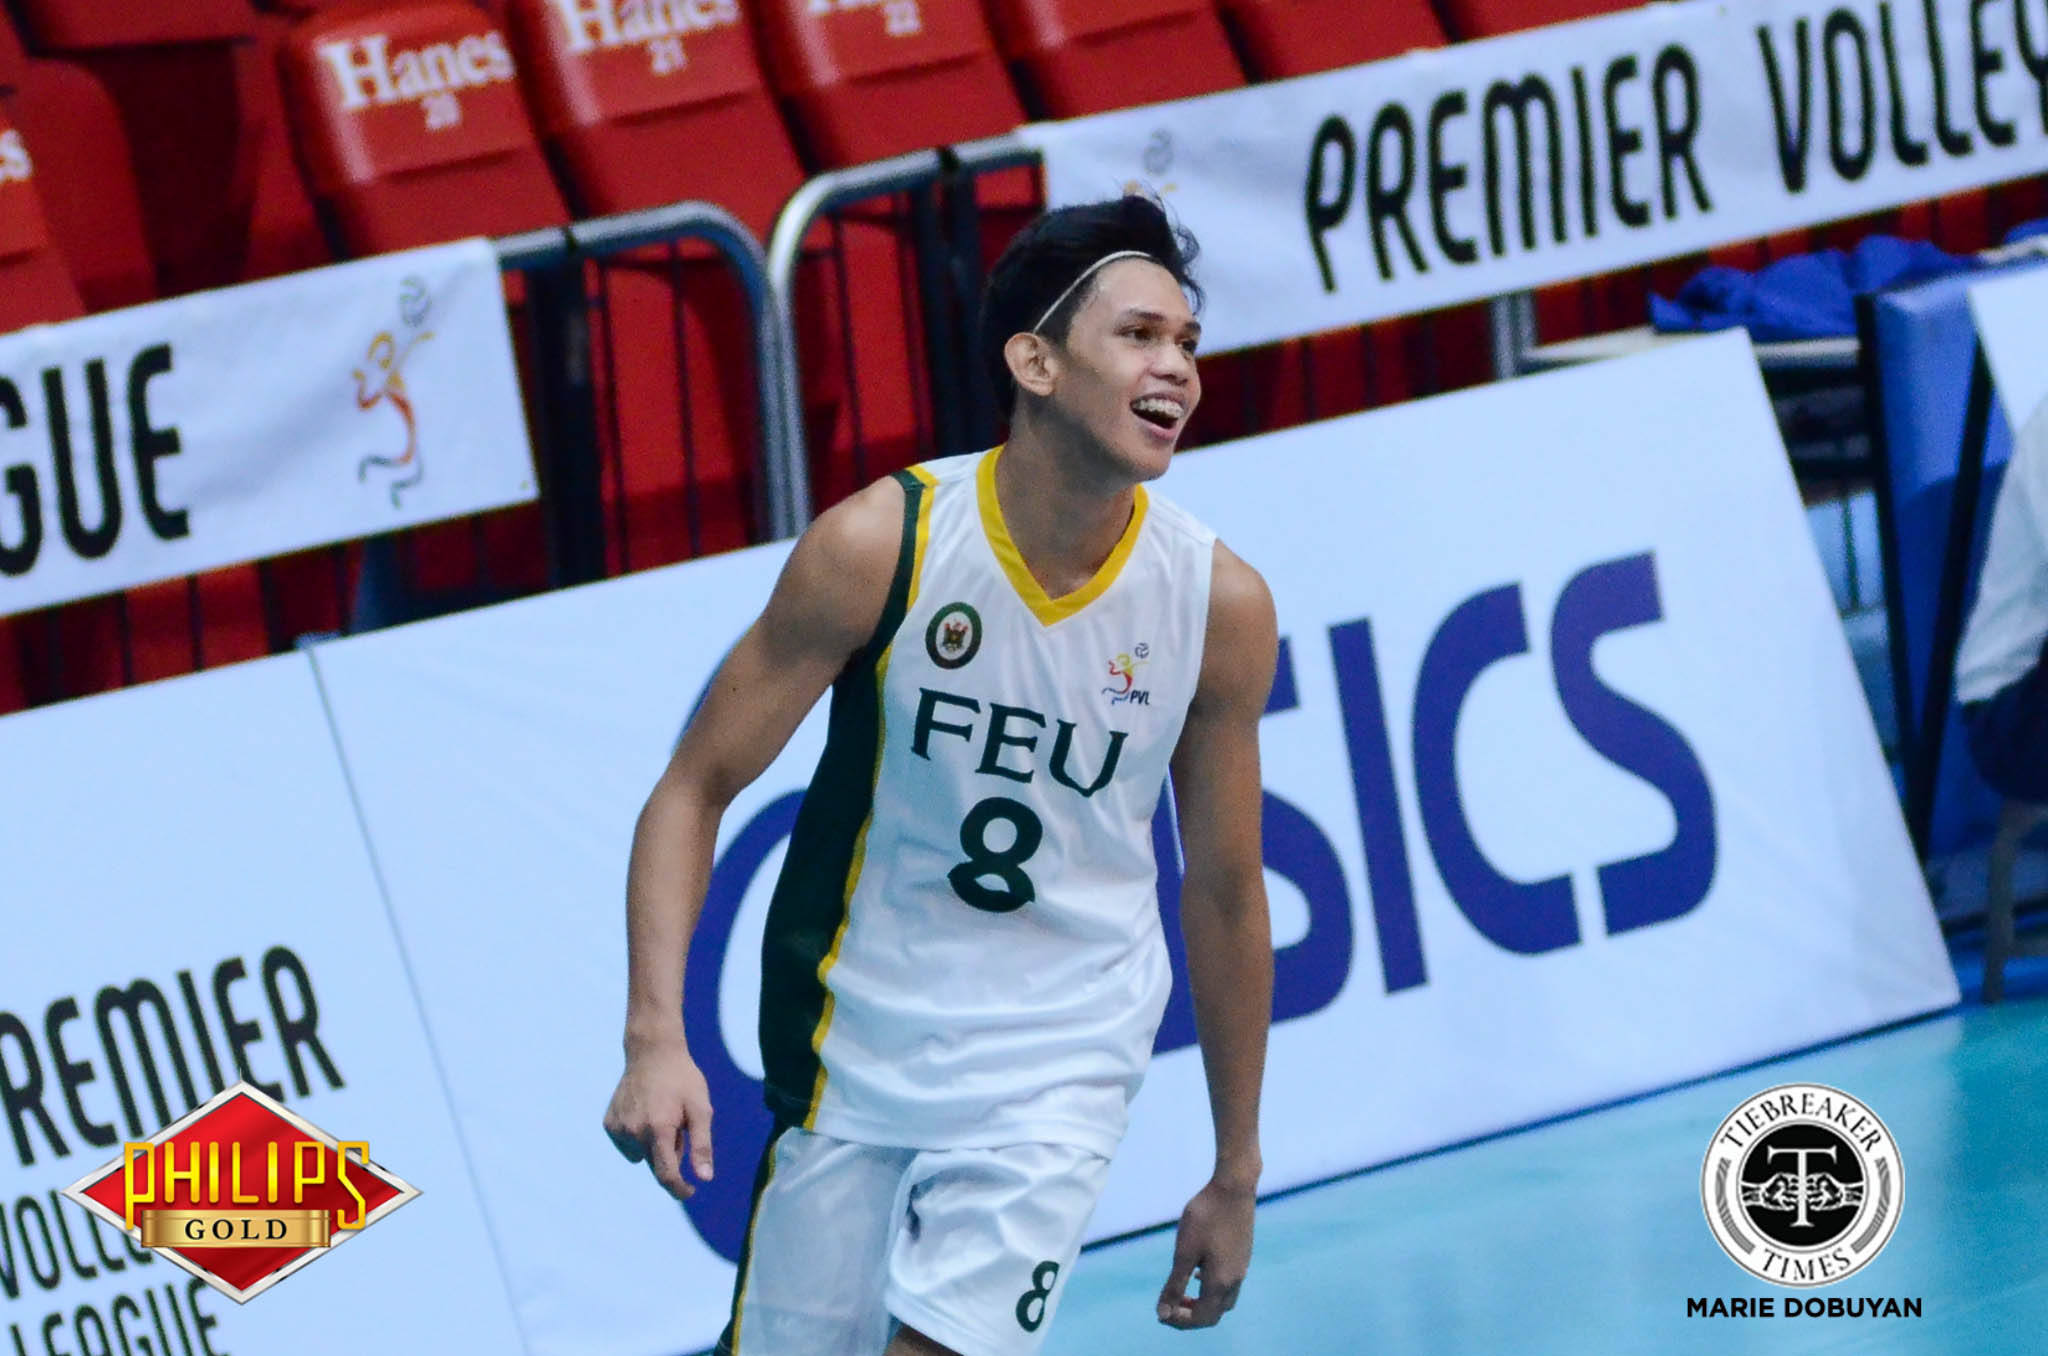 Philippine Sports News - Tiebreaker Times Tamaraws outlast Tiger Spikers for third win FEU News PVL UST Volleyball  UST Men's Volleyball Rikko Marmeto Rey Diaz Redijohn Paler Odjie Mamon Kris Silang JP Bugaoan Joshua Umandal FEU Men's Volleyball Arnold Bautista 2017 PVL Season 2017 PVL Men's Collegiate Conference